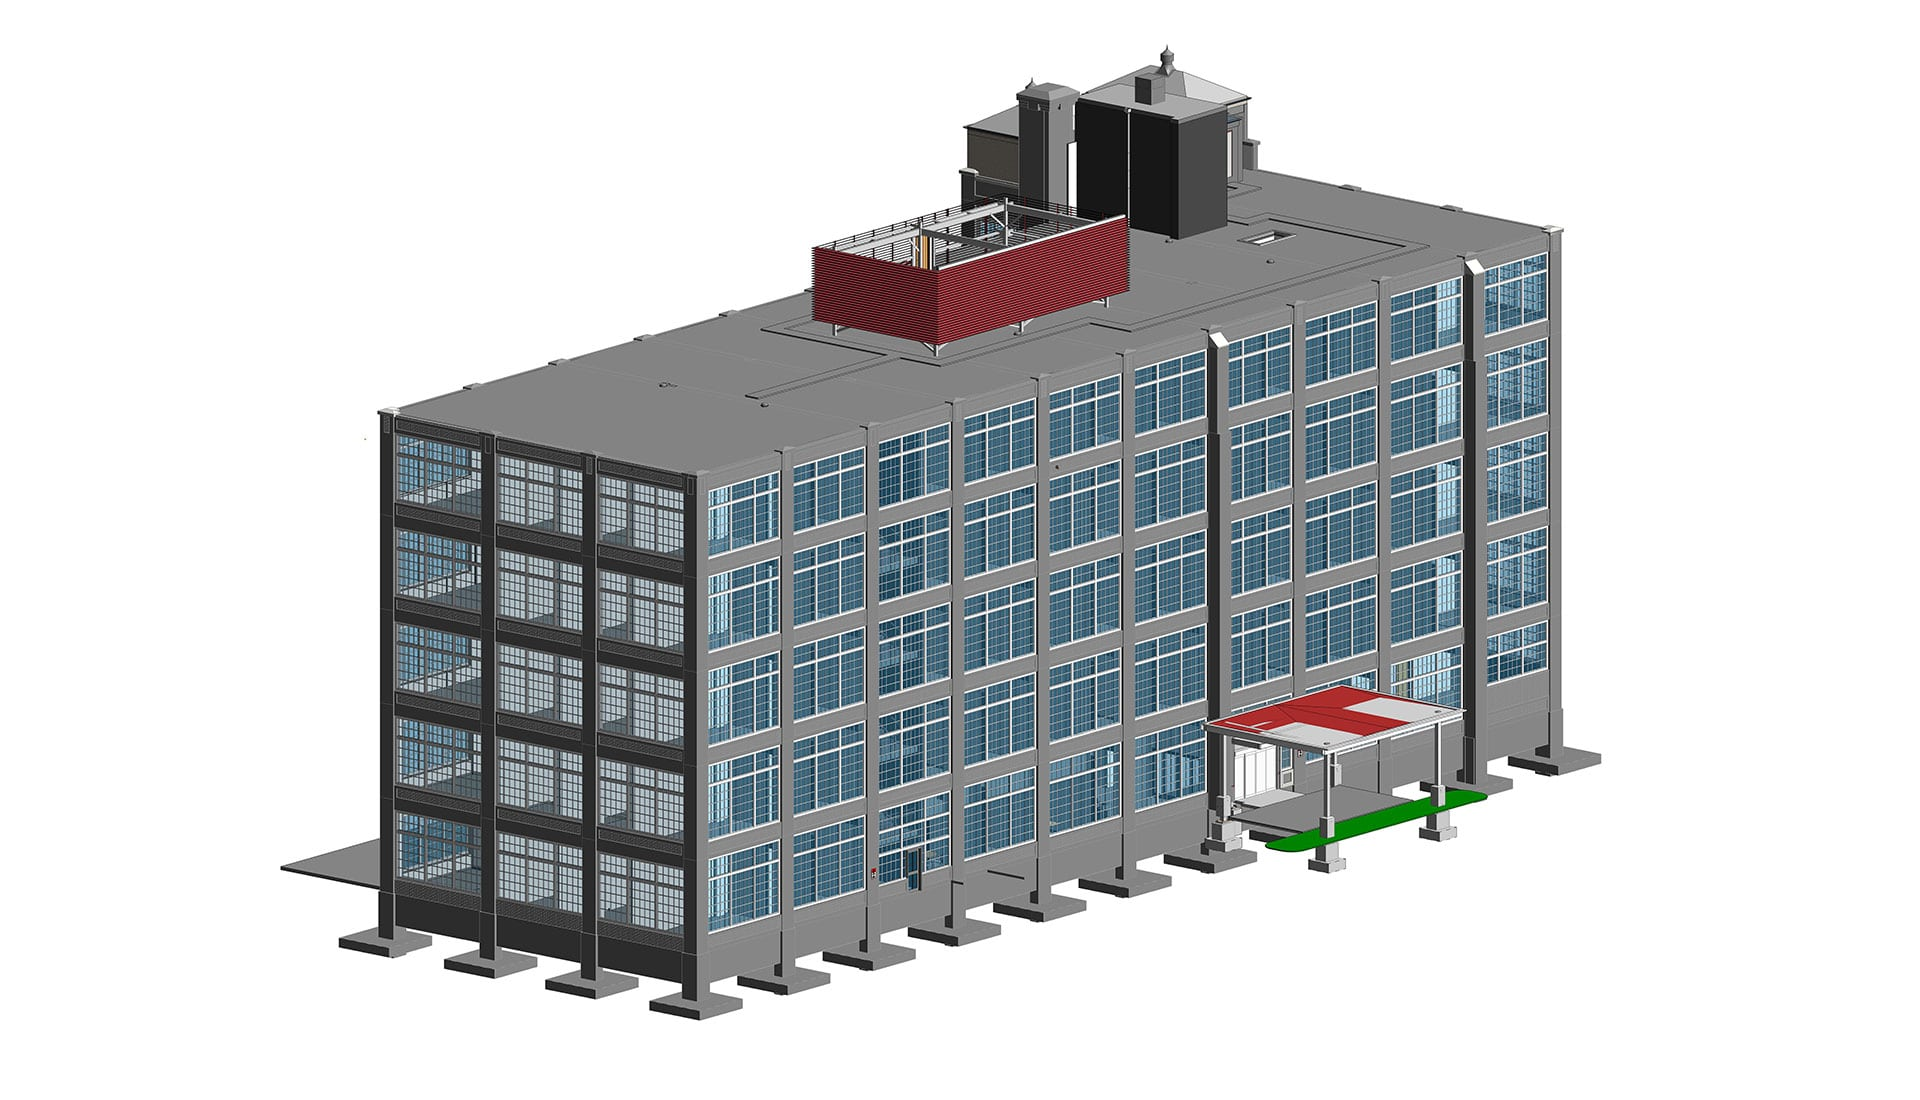 3D-Architectural-BIM-Model-Benefits of BIM